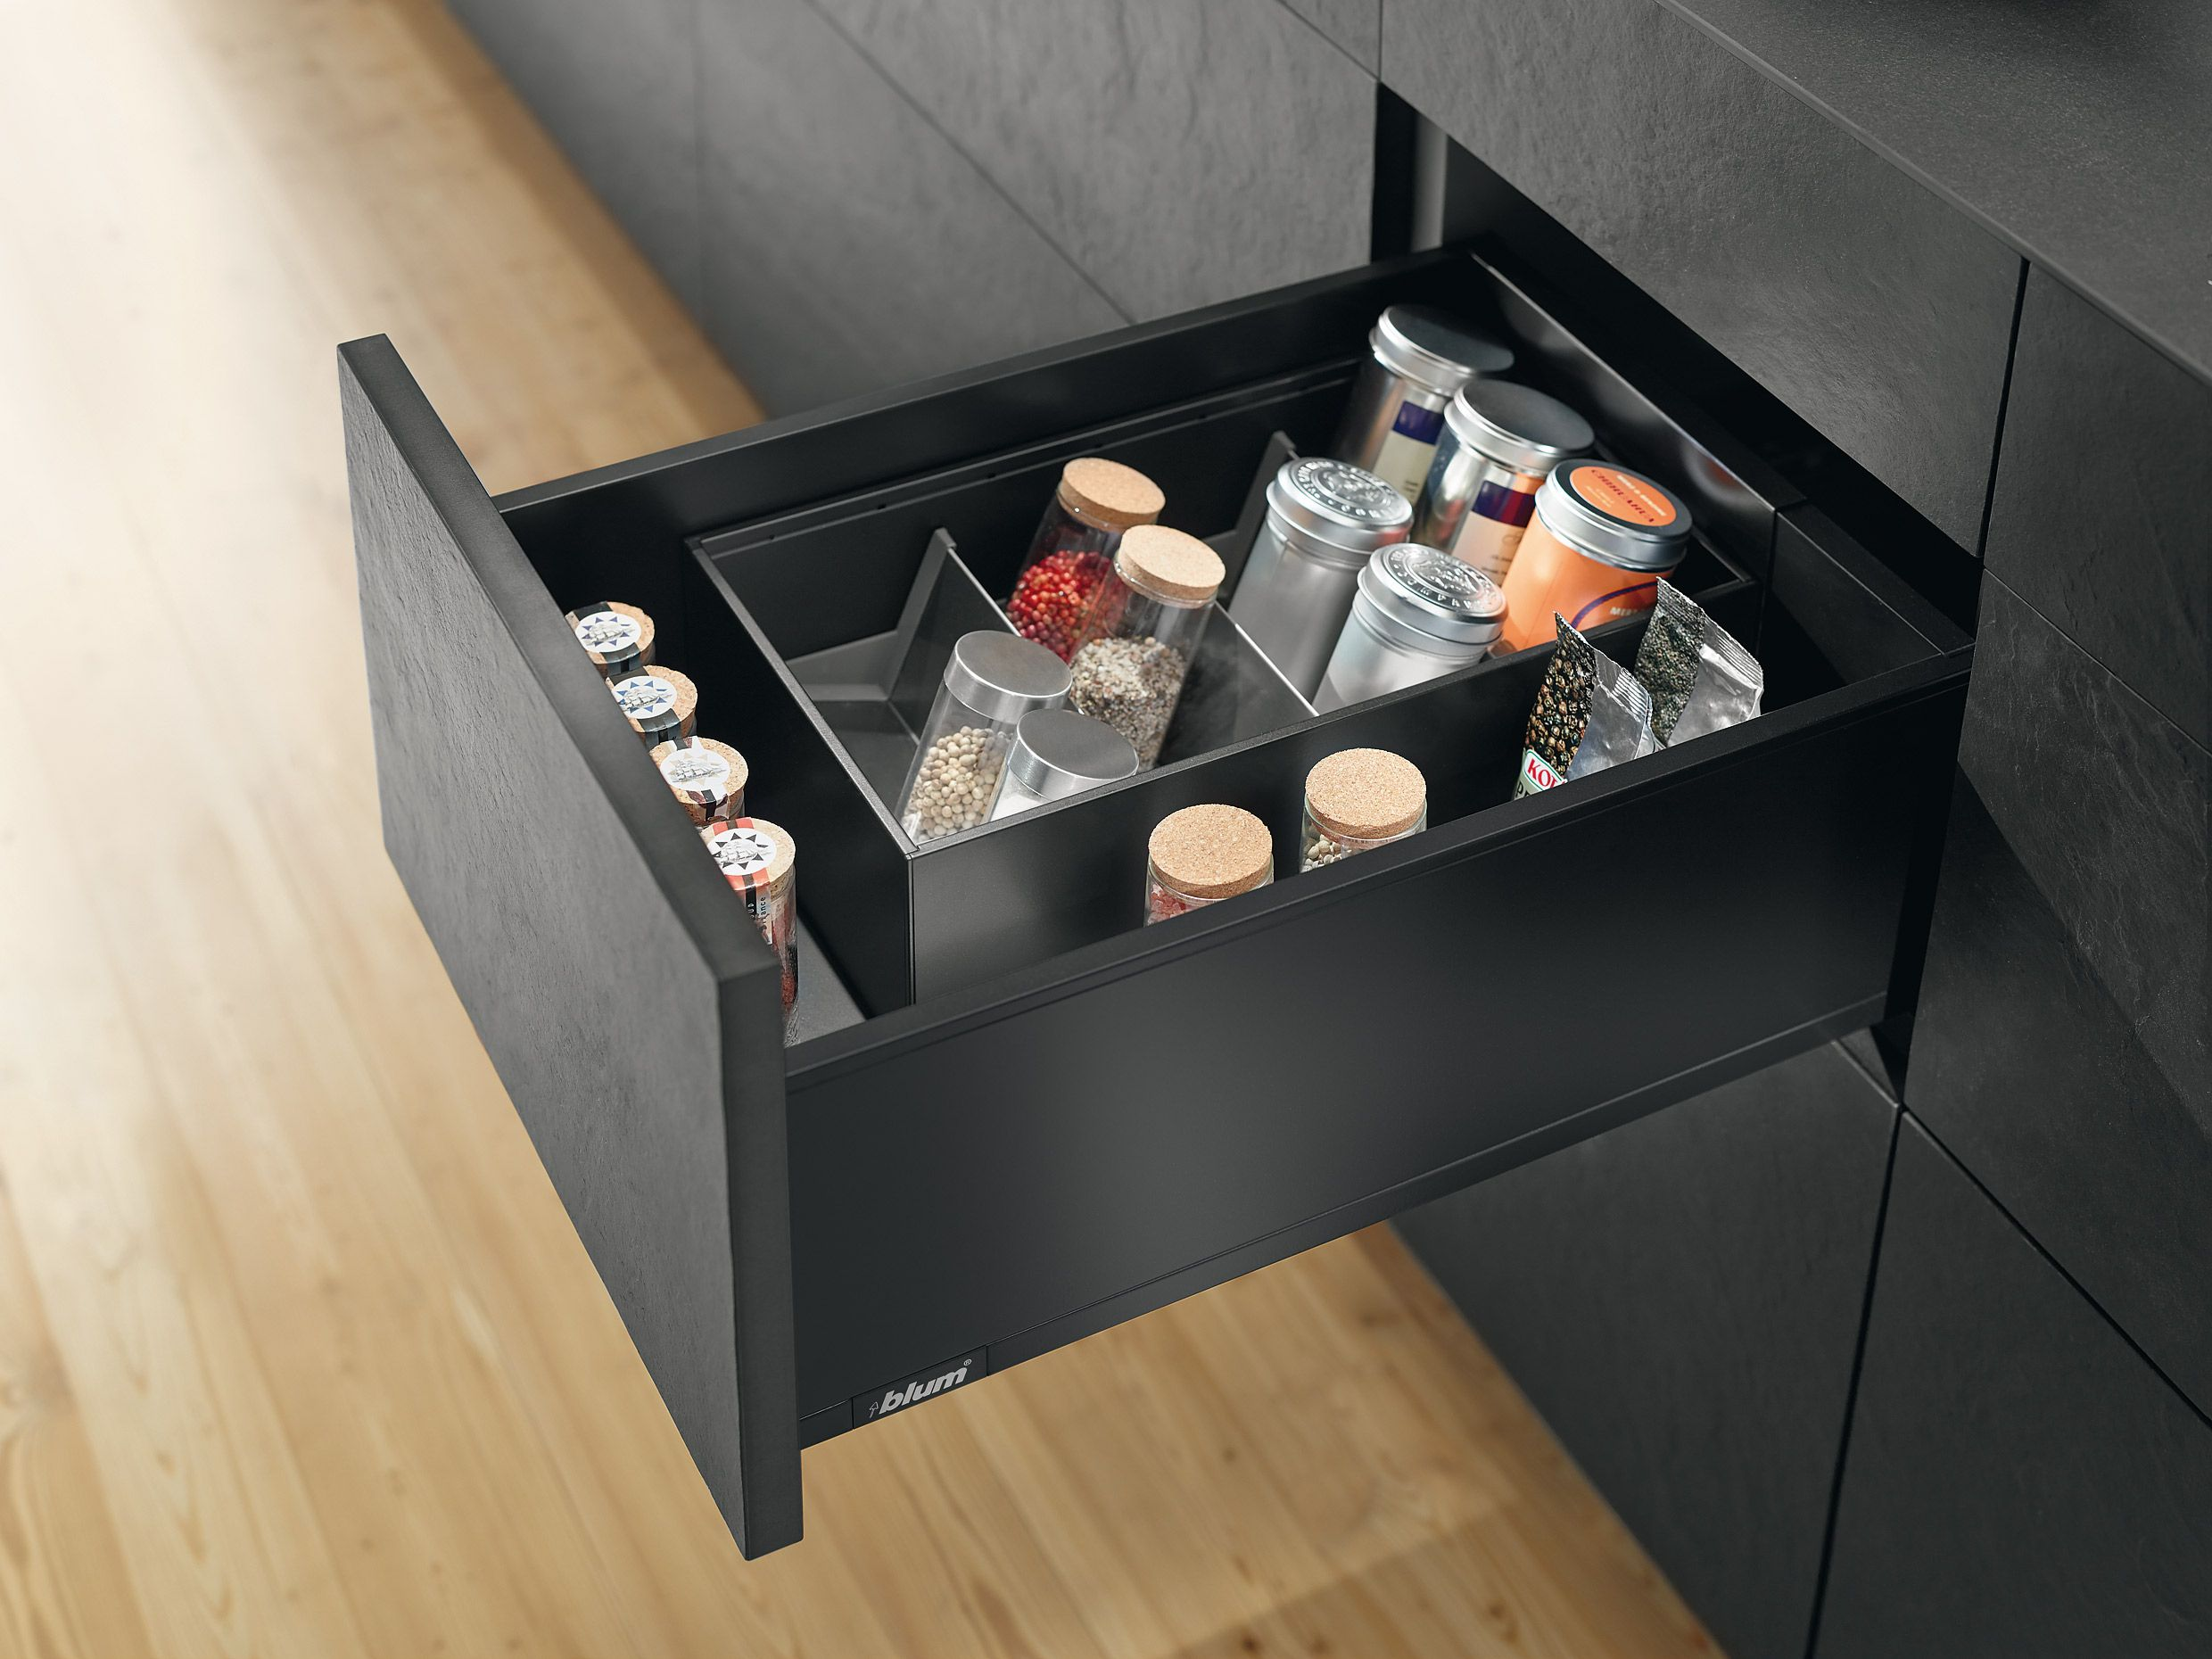 BLUM Legrabox | BLUM Legrabox | Pinterest | Küche